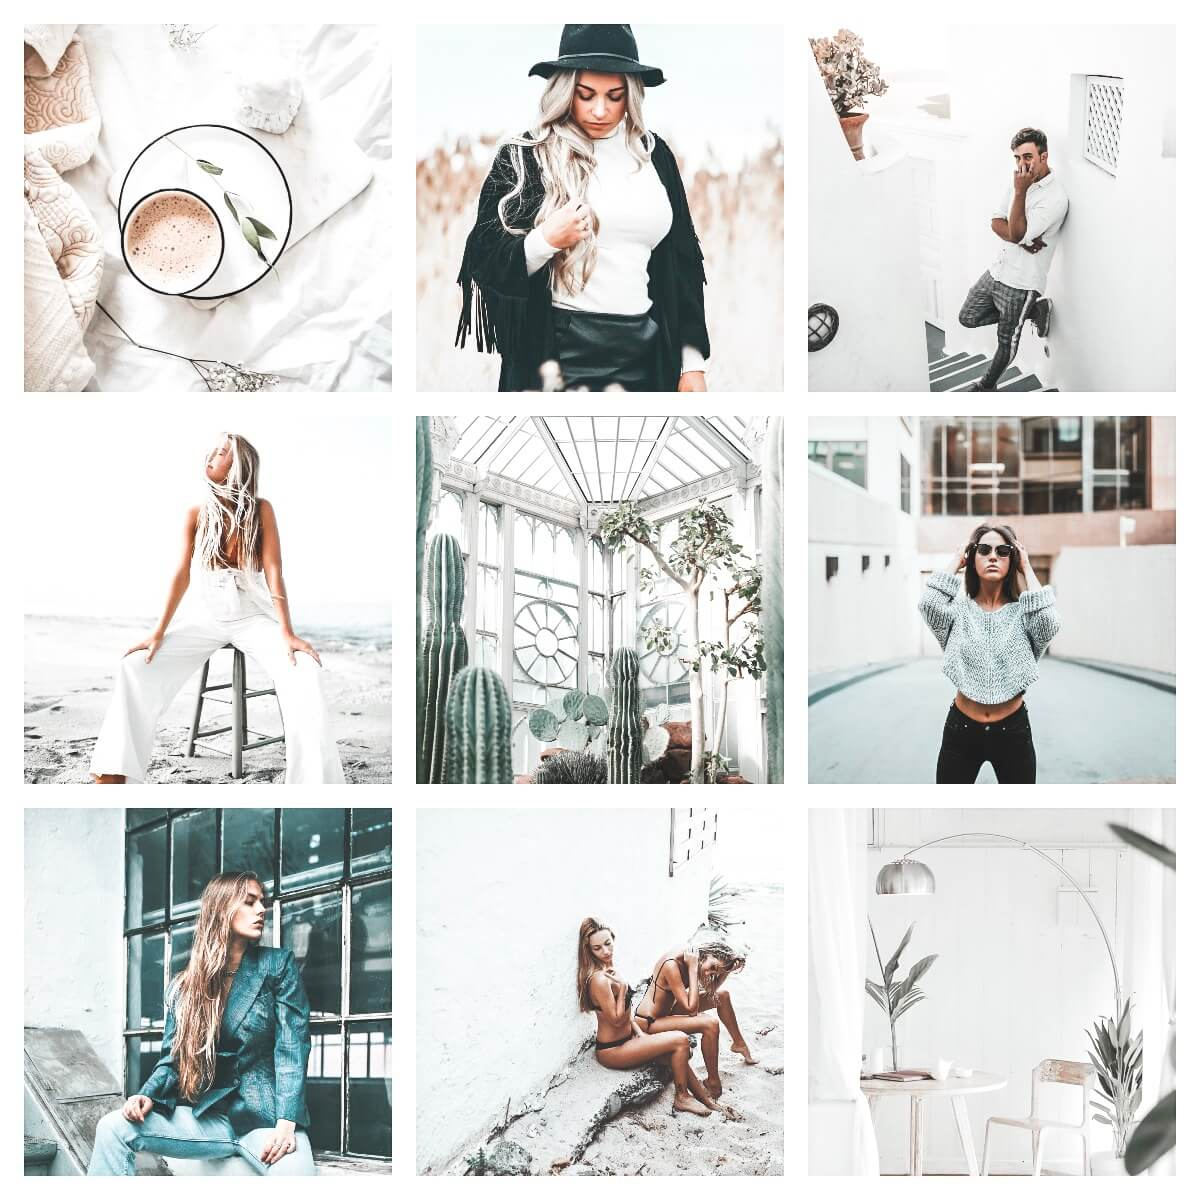 Minimal Whites moodboard preset filters Pixgrade for mobile and desktop